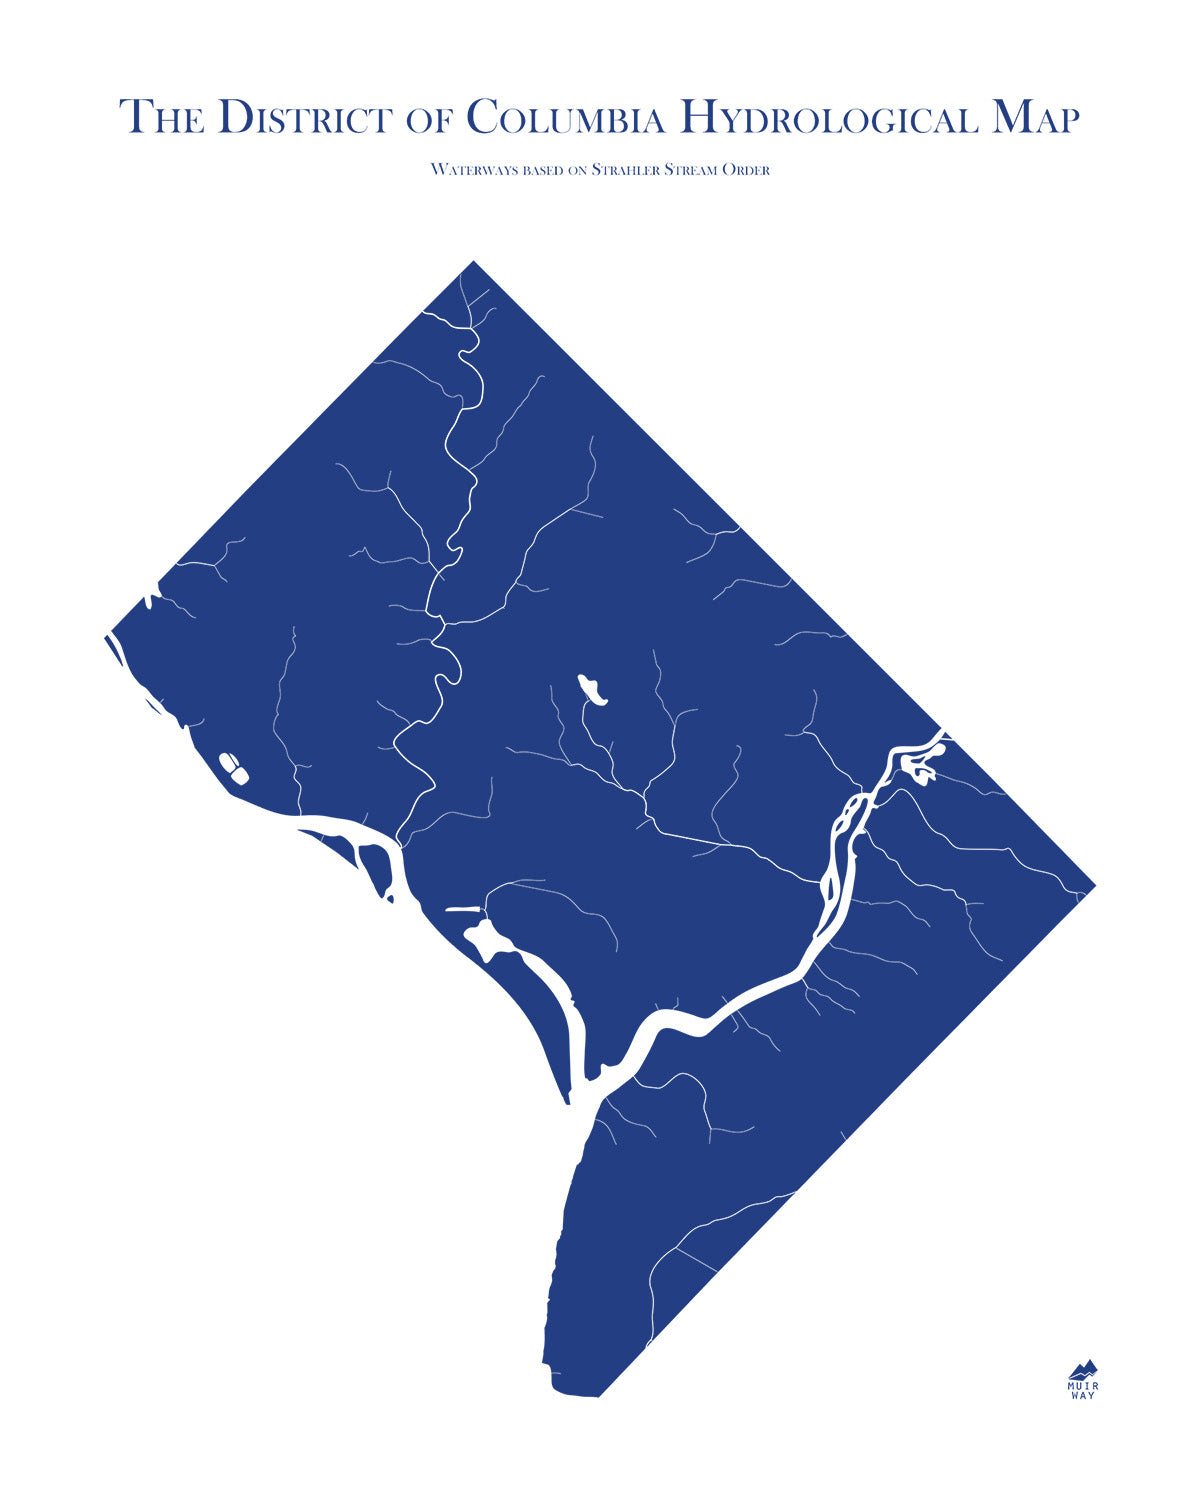 District of Columbia Hydrology Series Map - Muir Way